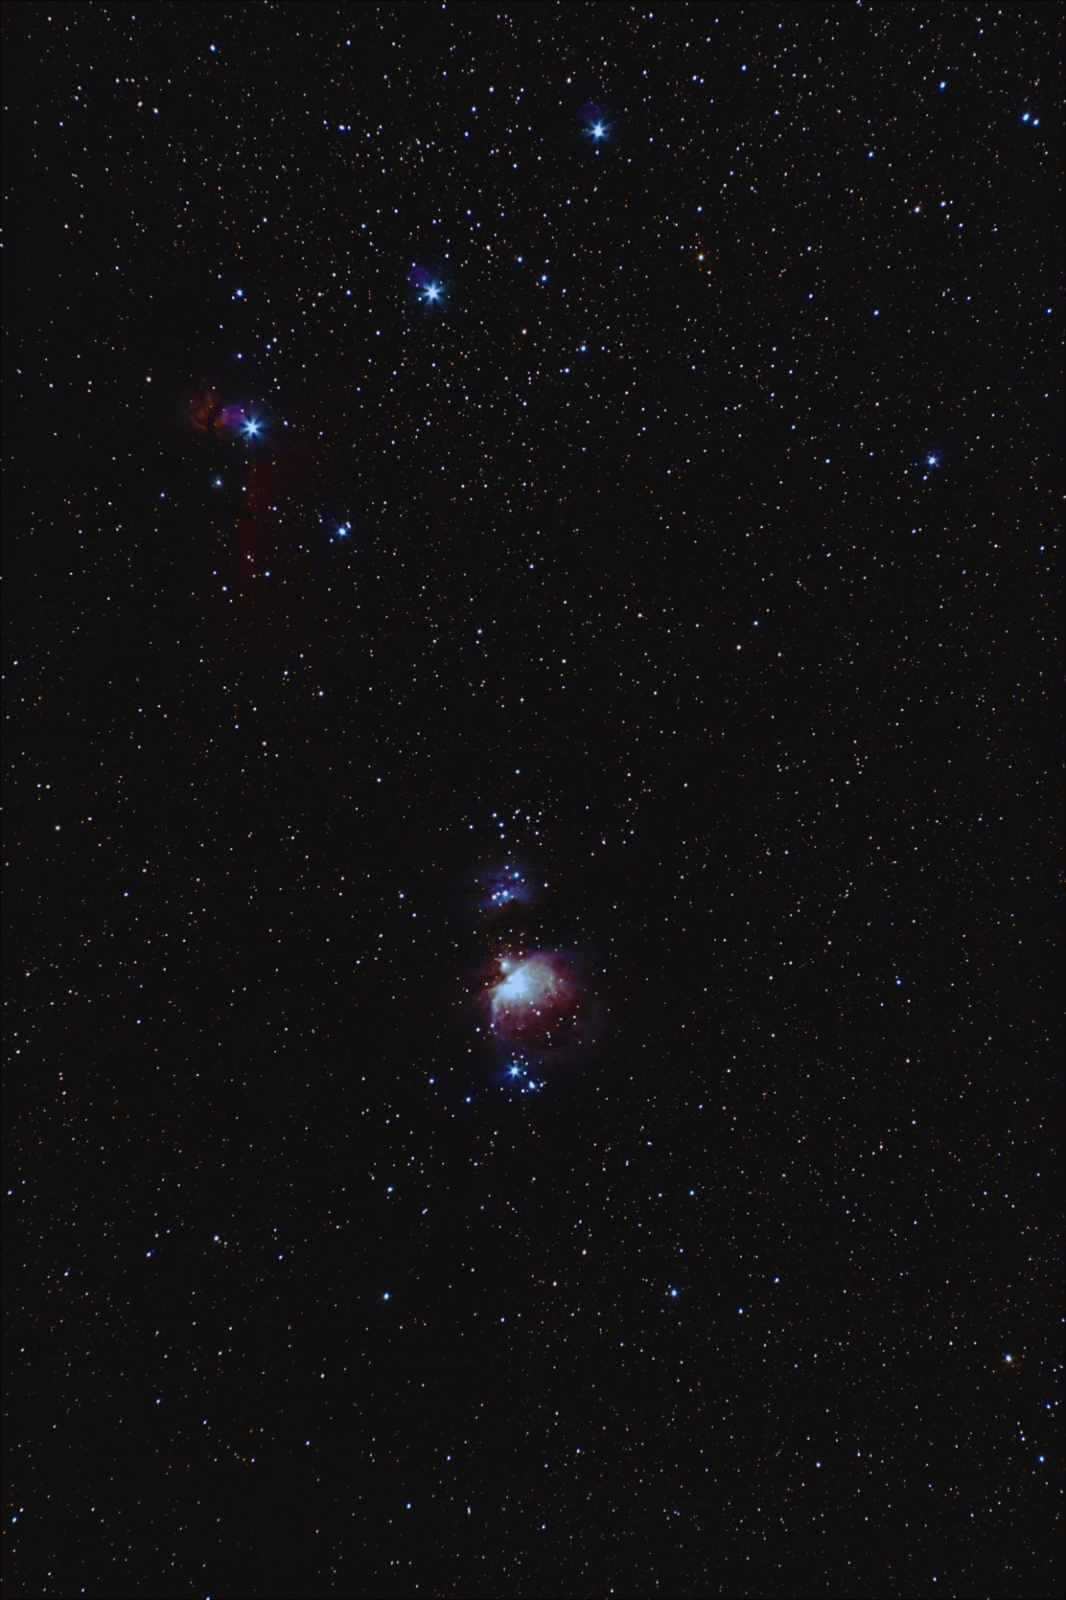 Orion2.thumb.png.2a77100b26853081f2a602003236d394.png